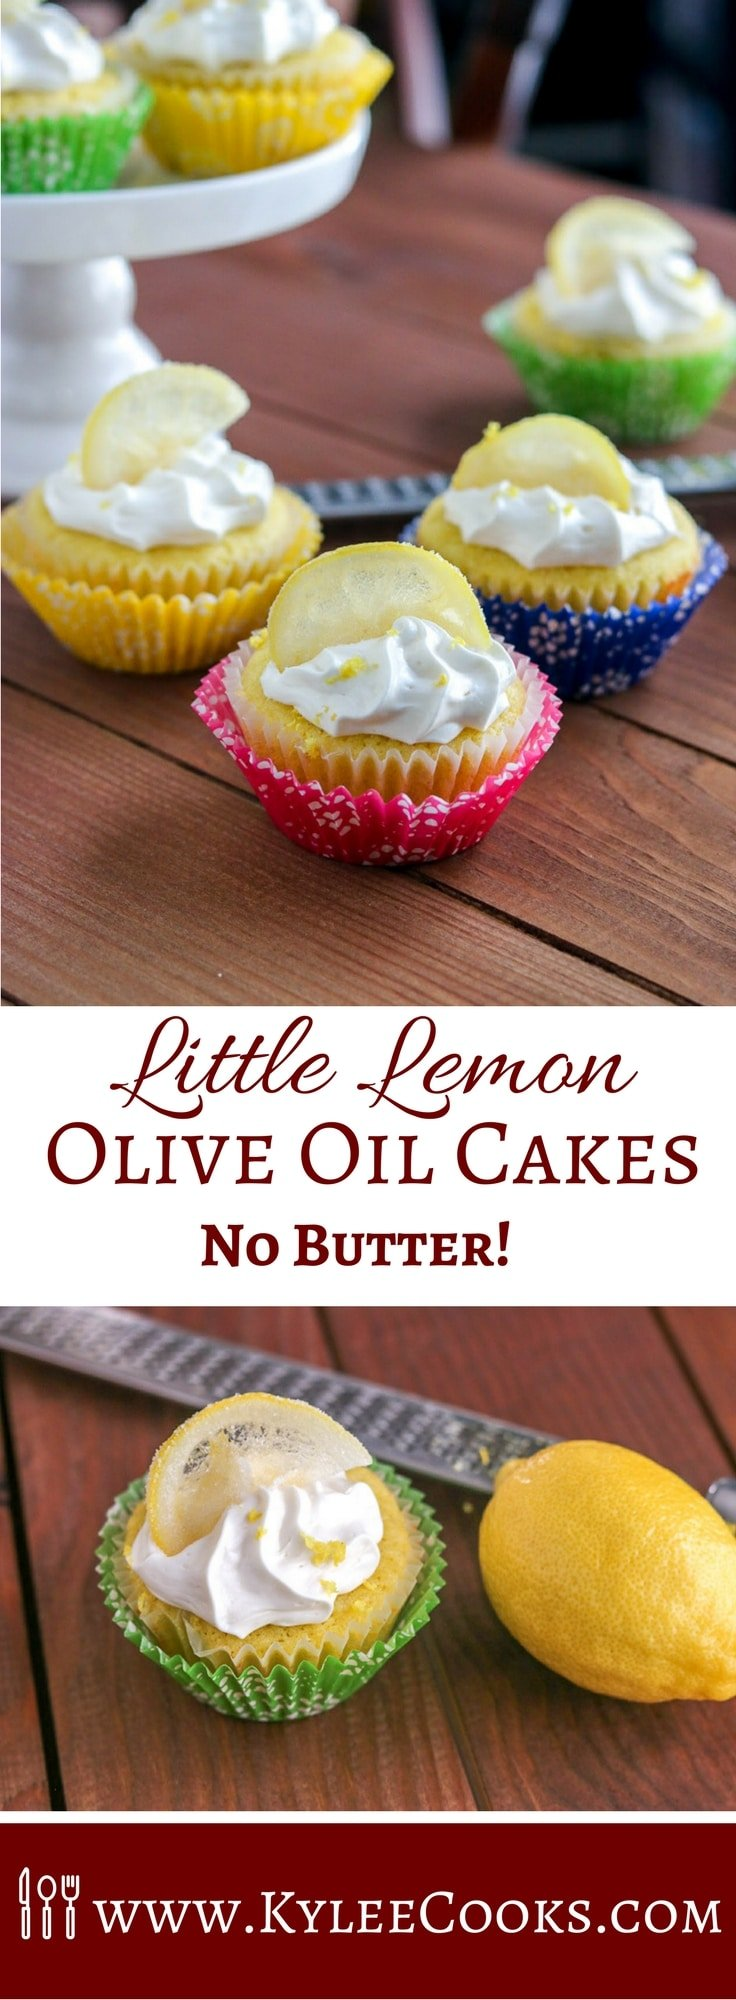 Delightfully lemon-y and not super sweet, these Little Lemon Olive Oil Cakes have no butter! A good quality olive oil is used instead - for delicious, tender, fully flavored results!